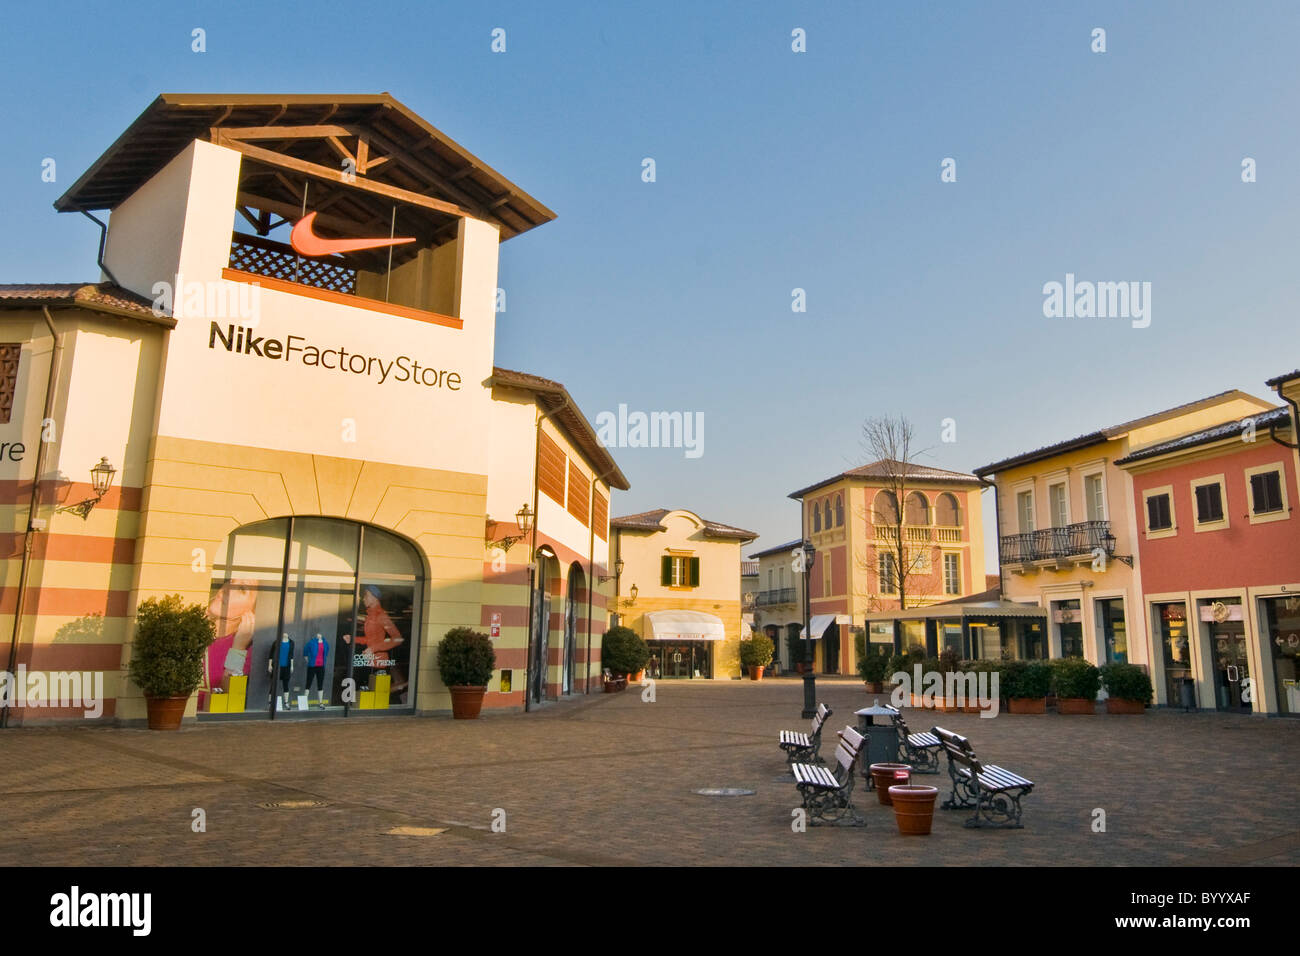 nike factory store designer outlet serravalle scrivia alessandria stock photo 34419463 alamy. Black Bedroom Furniture Sets. Home Design Ideas